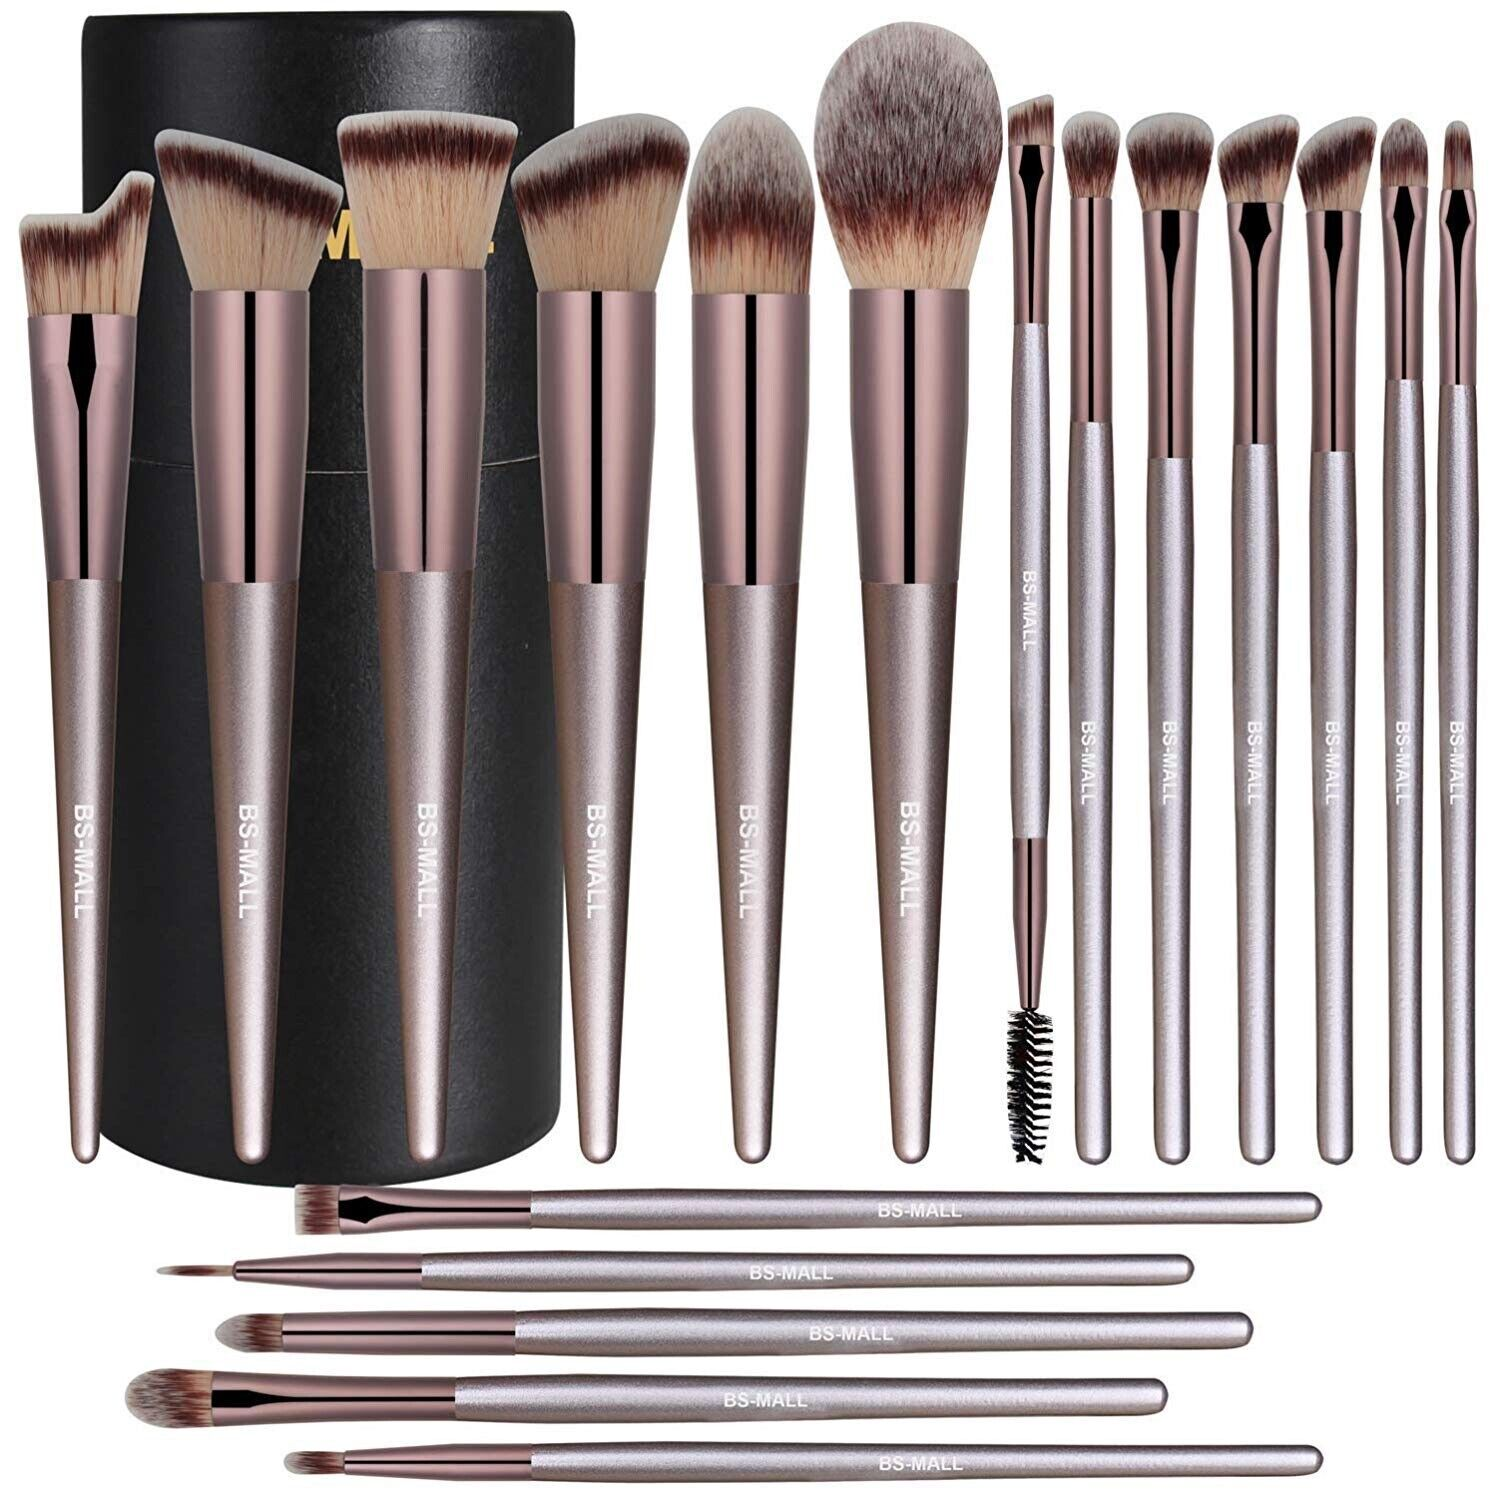 BS-MALL Makeup Brush Set 18 Pcs Premium Synthetic Foundation